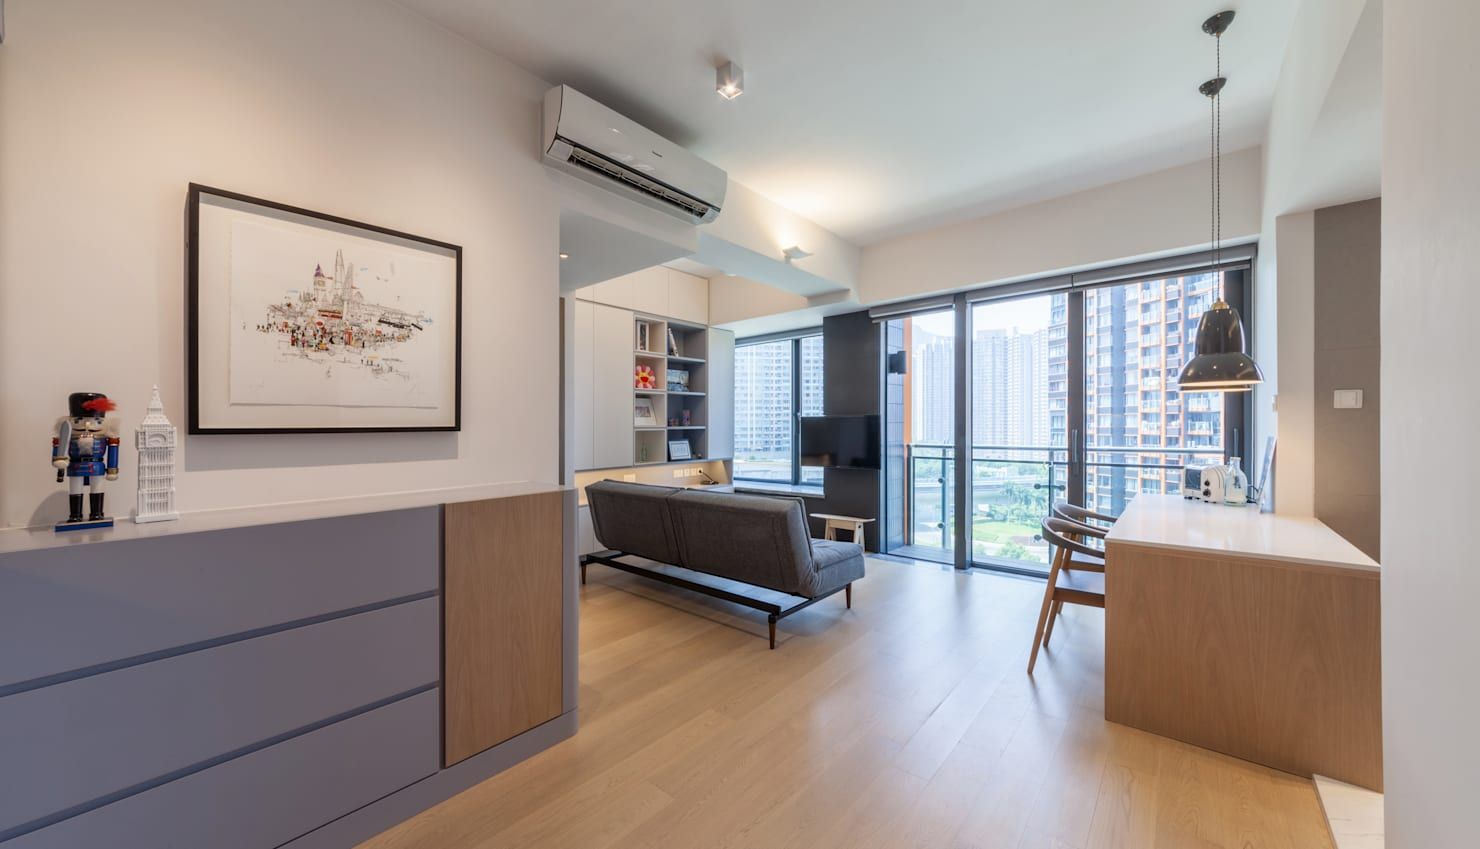 10 tricks to keep your Hong Kong home cool and fresh